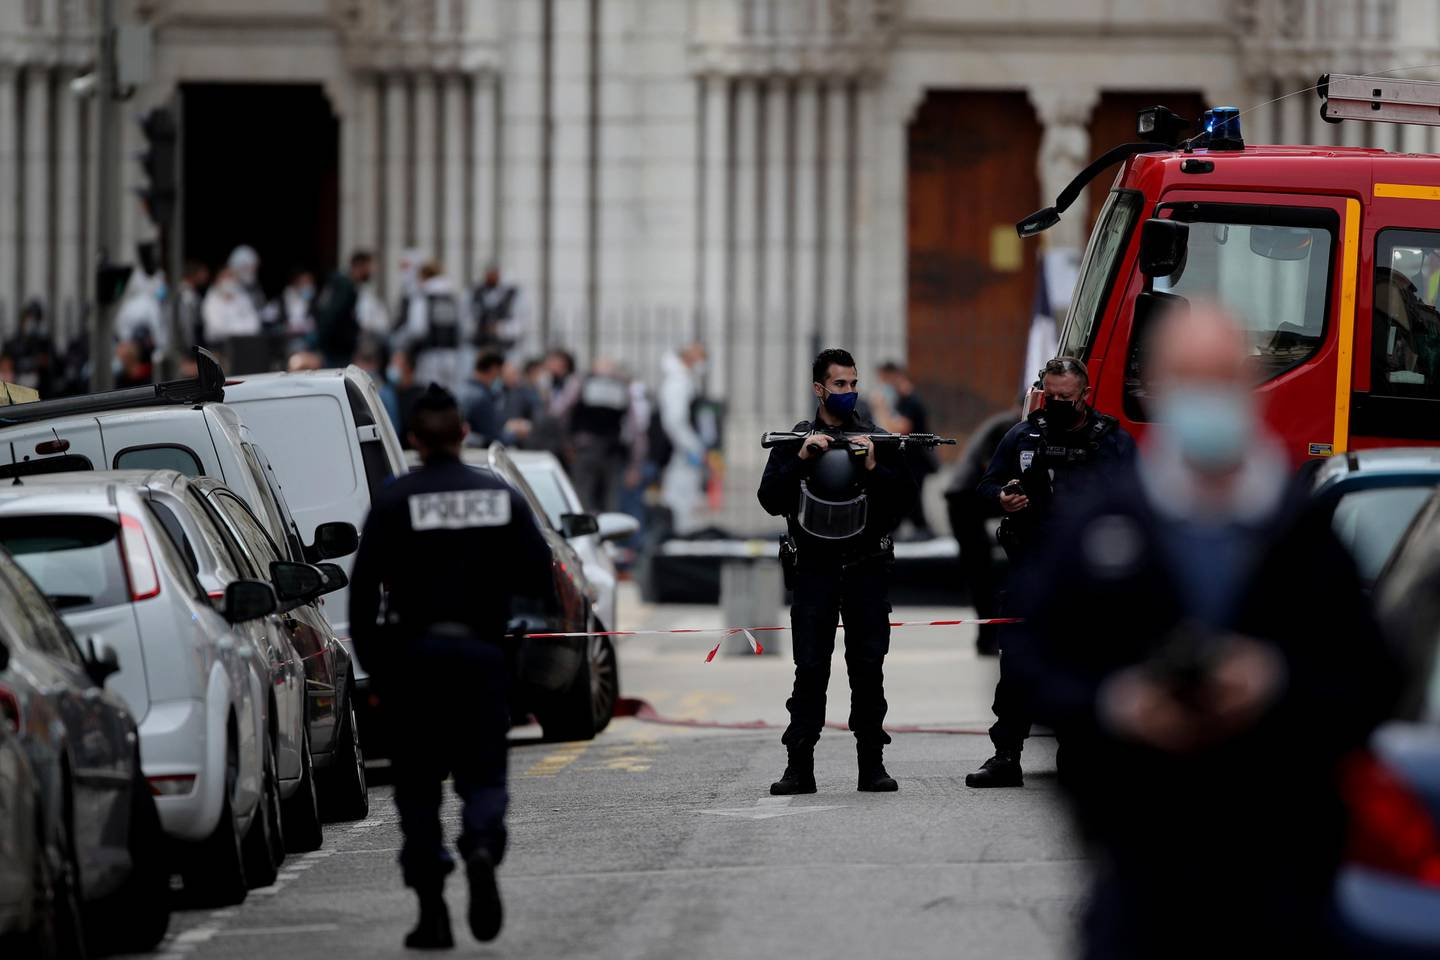 Policemen stand guard near the scene of the knife attack at the Notre Dame church in Nice, France, Thursday, Oct. 29, 2020. An attacker armed with a knife killed three people at a church in the Mediterranean city of Nice, the third attack in two months in France. (AP Photo/Daniel Cole)